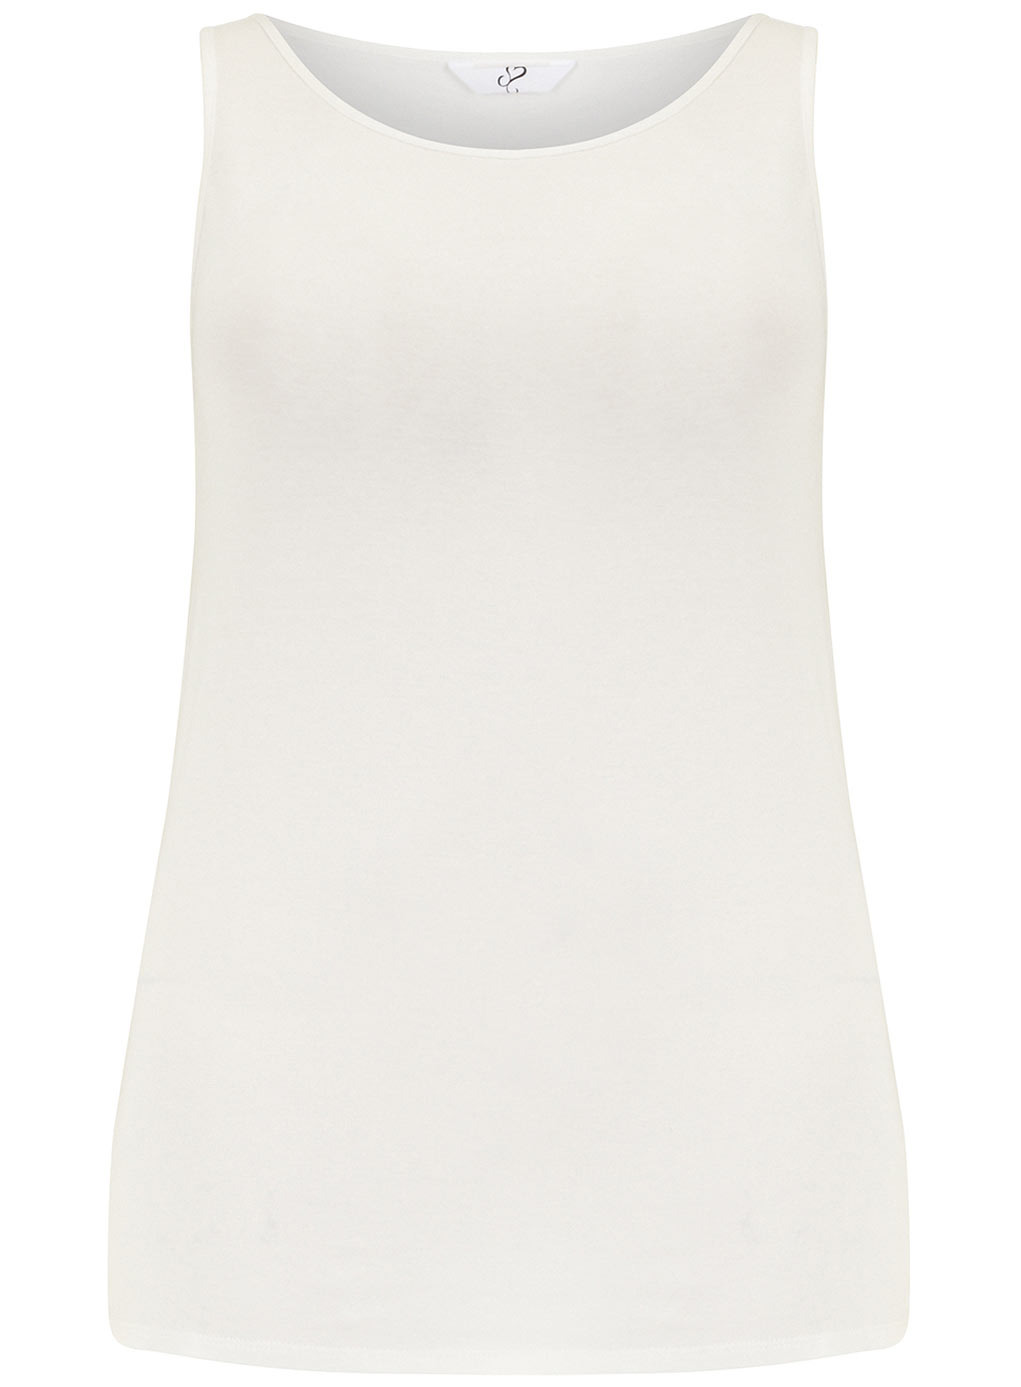 Ivory Sleeveless Ivory Vest - neckline: round neck; pattern: plain; sleeve style: sleeveless; style: vest top; predominant colour: ivory/cream; occasions: casual, holiday, creative work; length: standard; fibres: viscose/rayon - stretch; fit: body skimming; sleeve length: sleeveless; pattern type: fabric; texture group: jersey - stretchy/drapey; season: s/s 2014